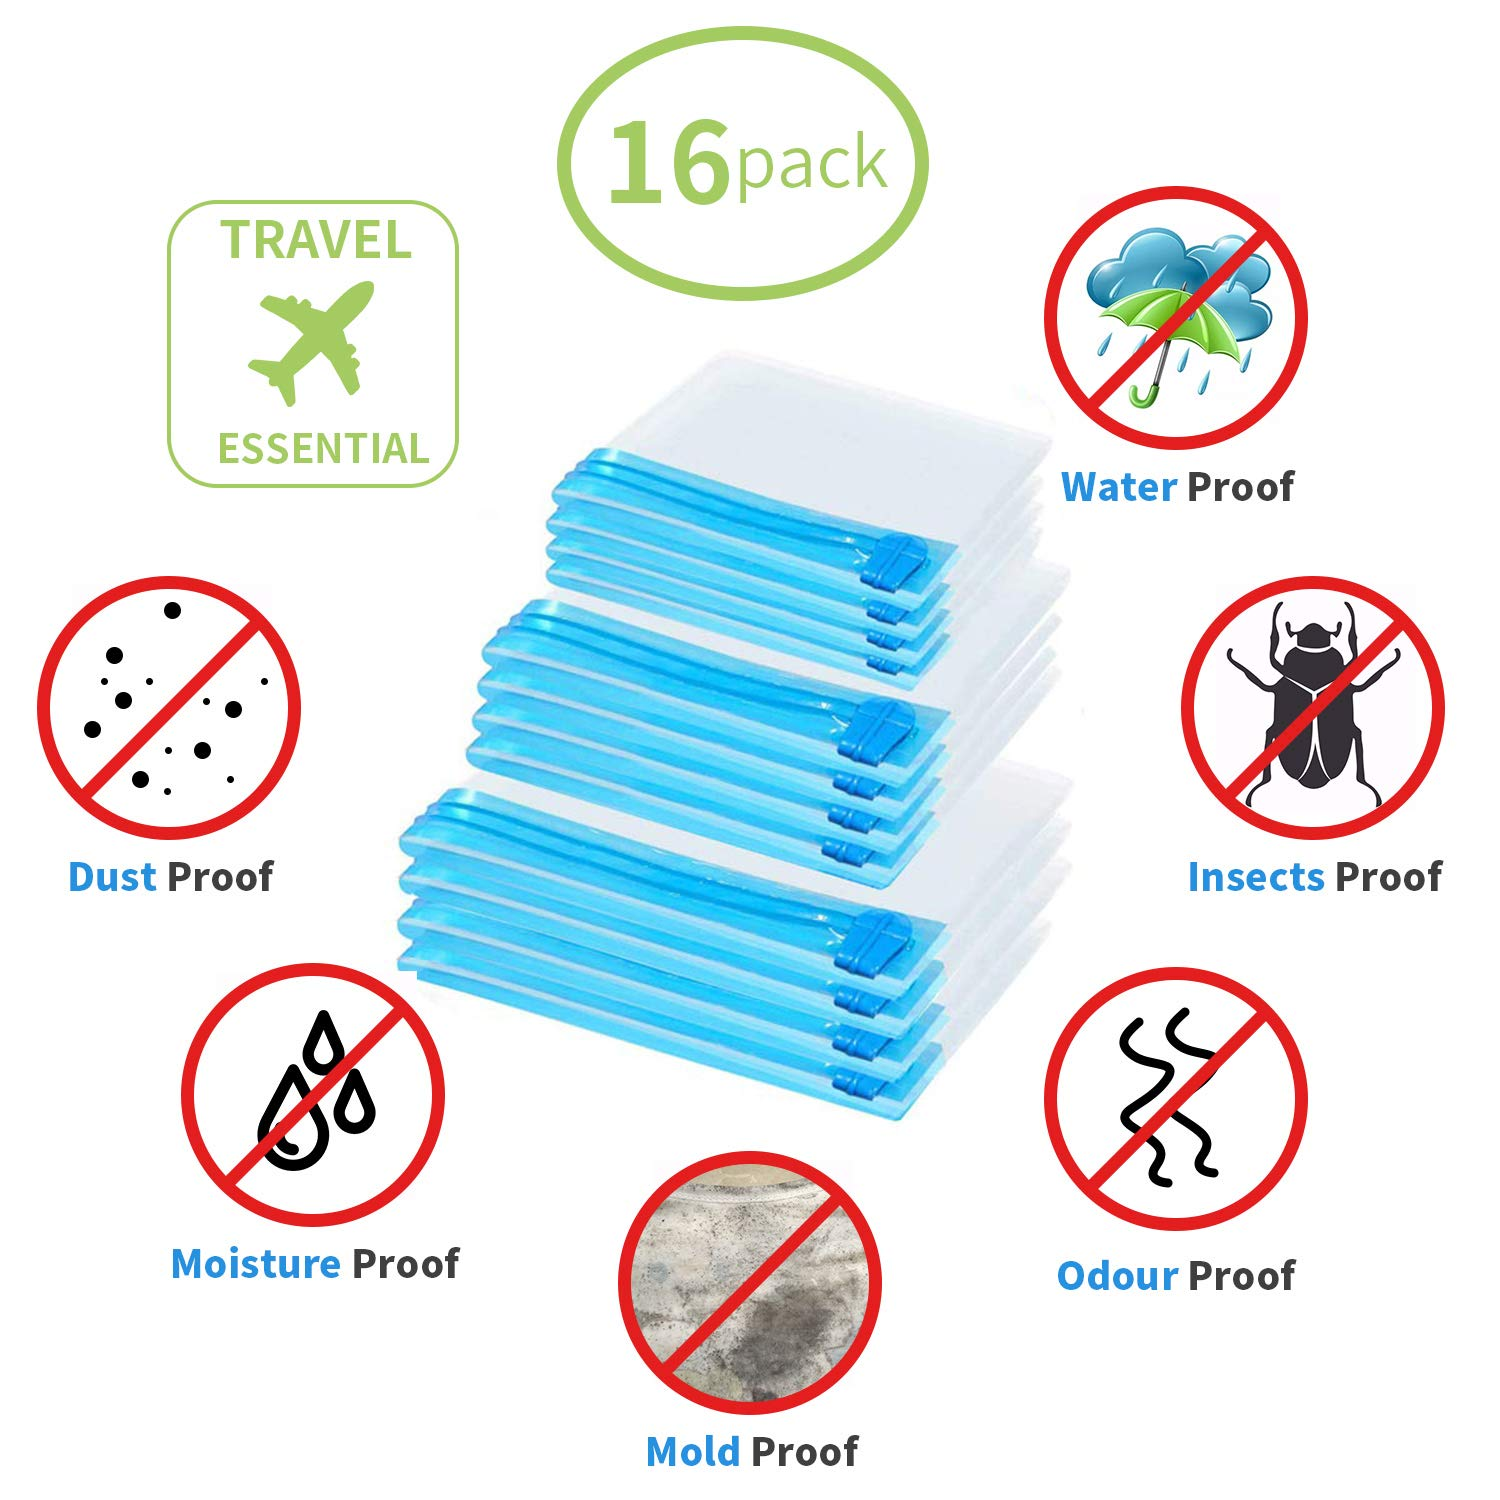 16 Pack Reusable Travel Roll Up Compression Bags Small Medium Large Size Space Saver Compression Sealer Bags for Duvets Clothes Bedding Blankets Home Storage ELECTRAPICK Vacuum Storage Bags